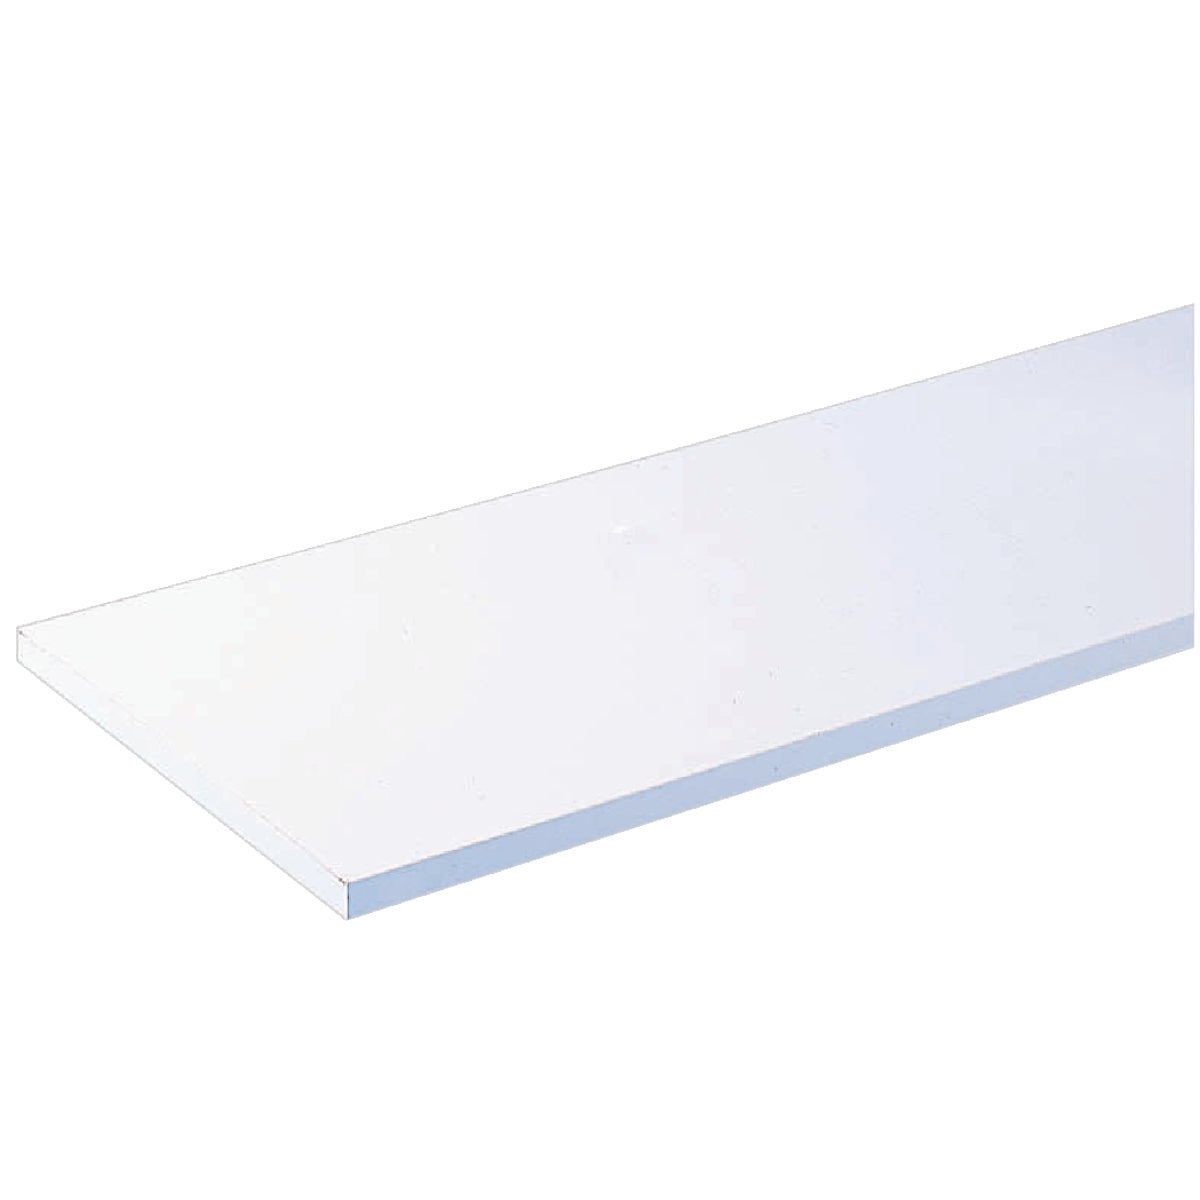 10X36 WHITE SHELF - 1980WH10X36 by Knape & Vogt Mfg Co